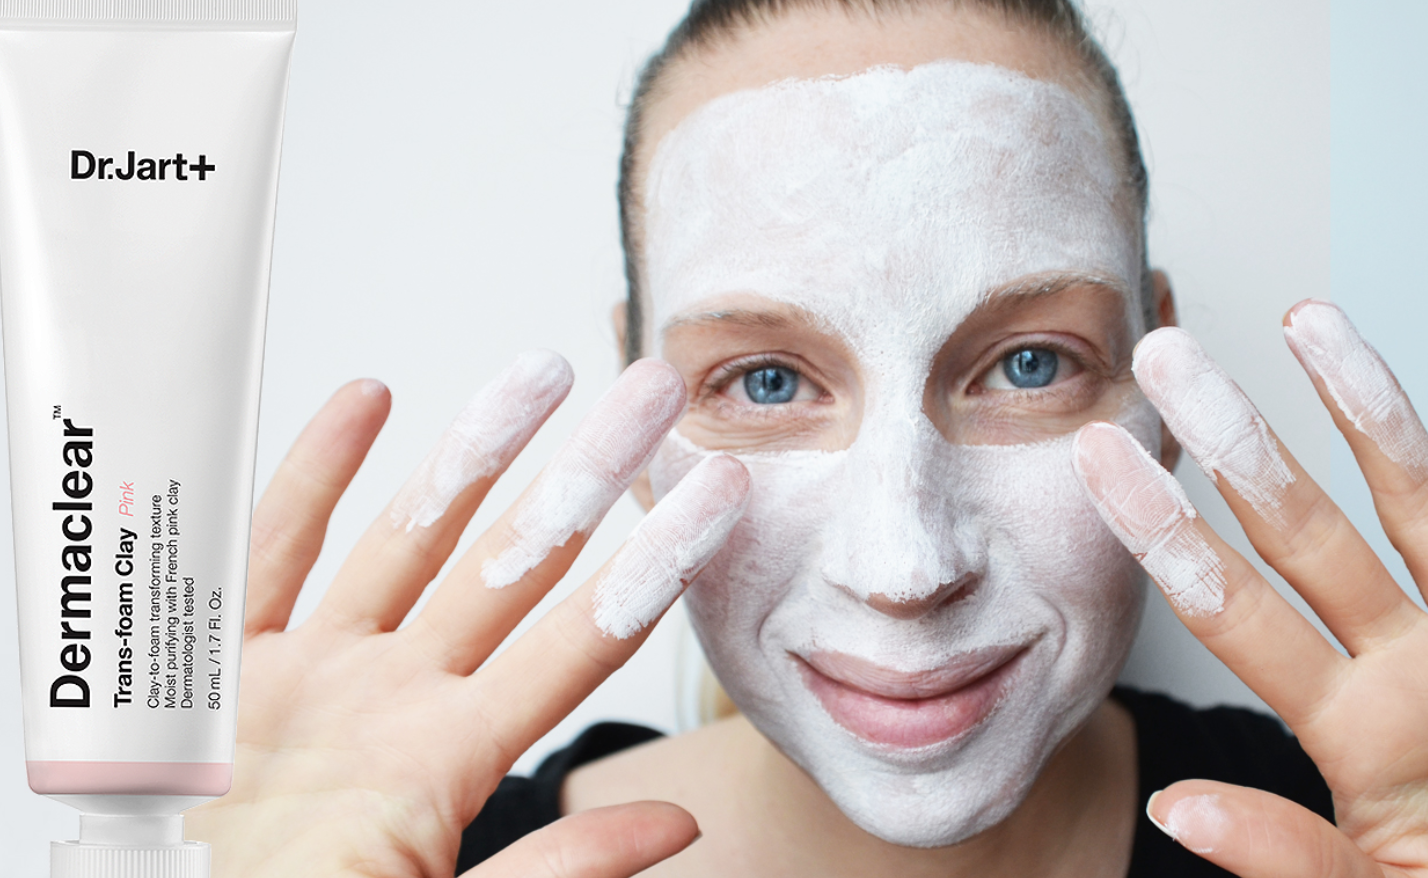 An influencer wearing a white clay face mask holds his hands up next to a bottle of Dr.Jart+'s Dermaclear Trans-foram Clay.